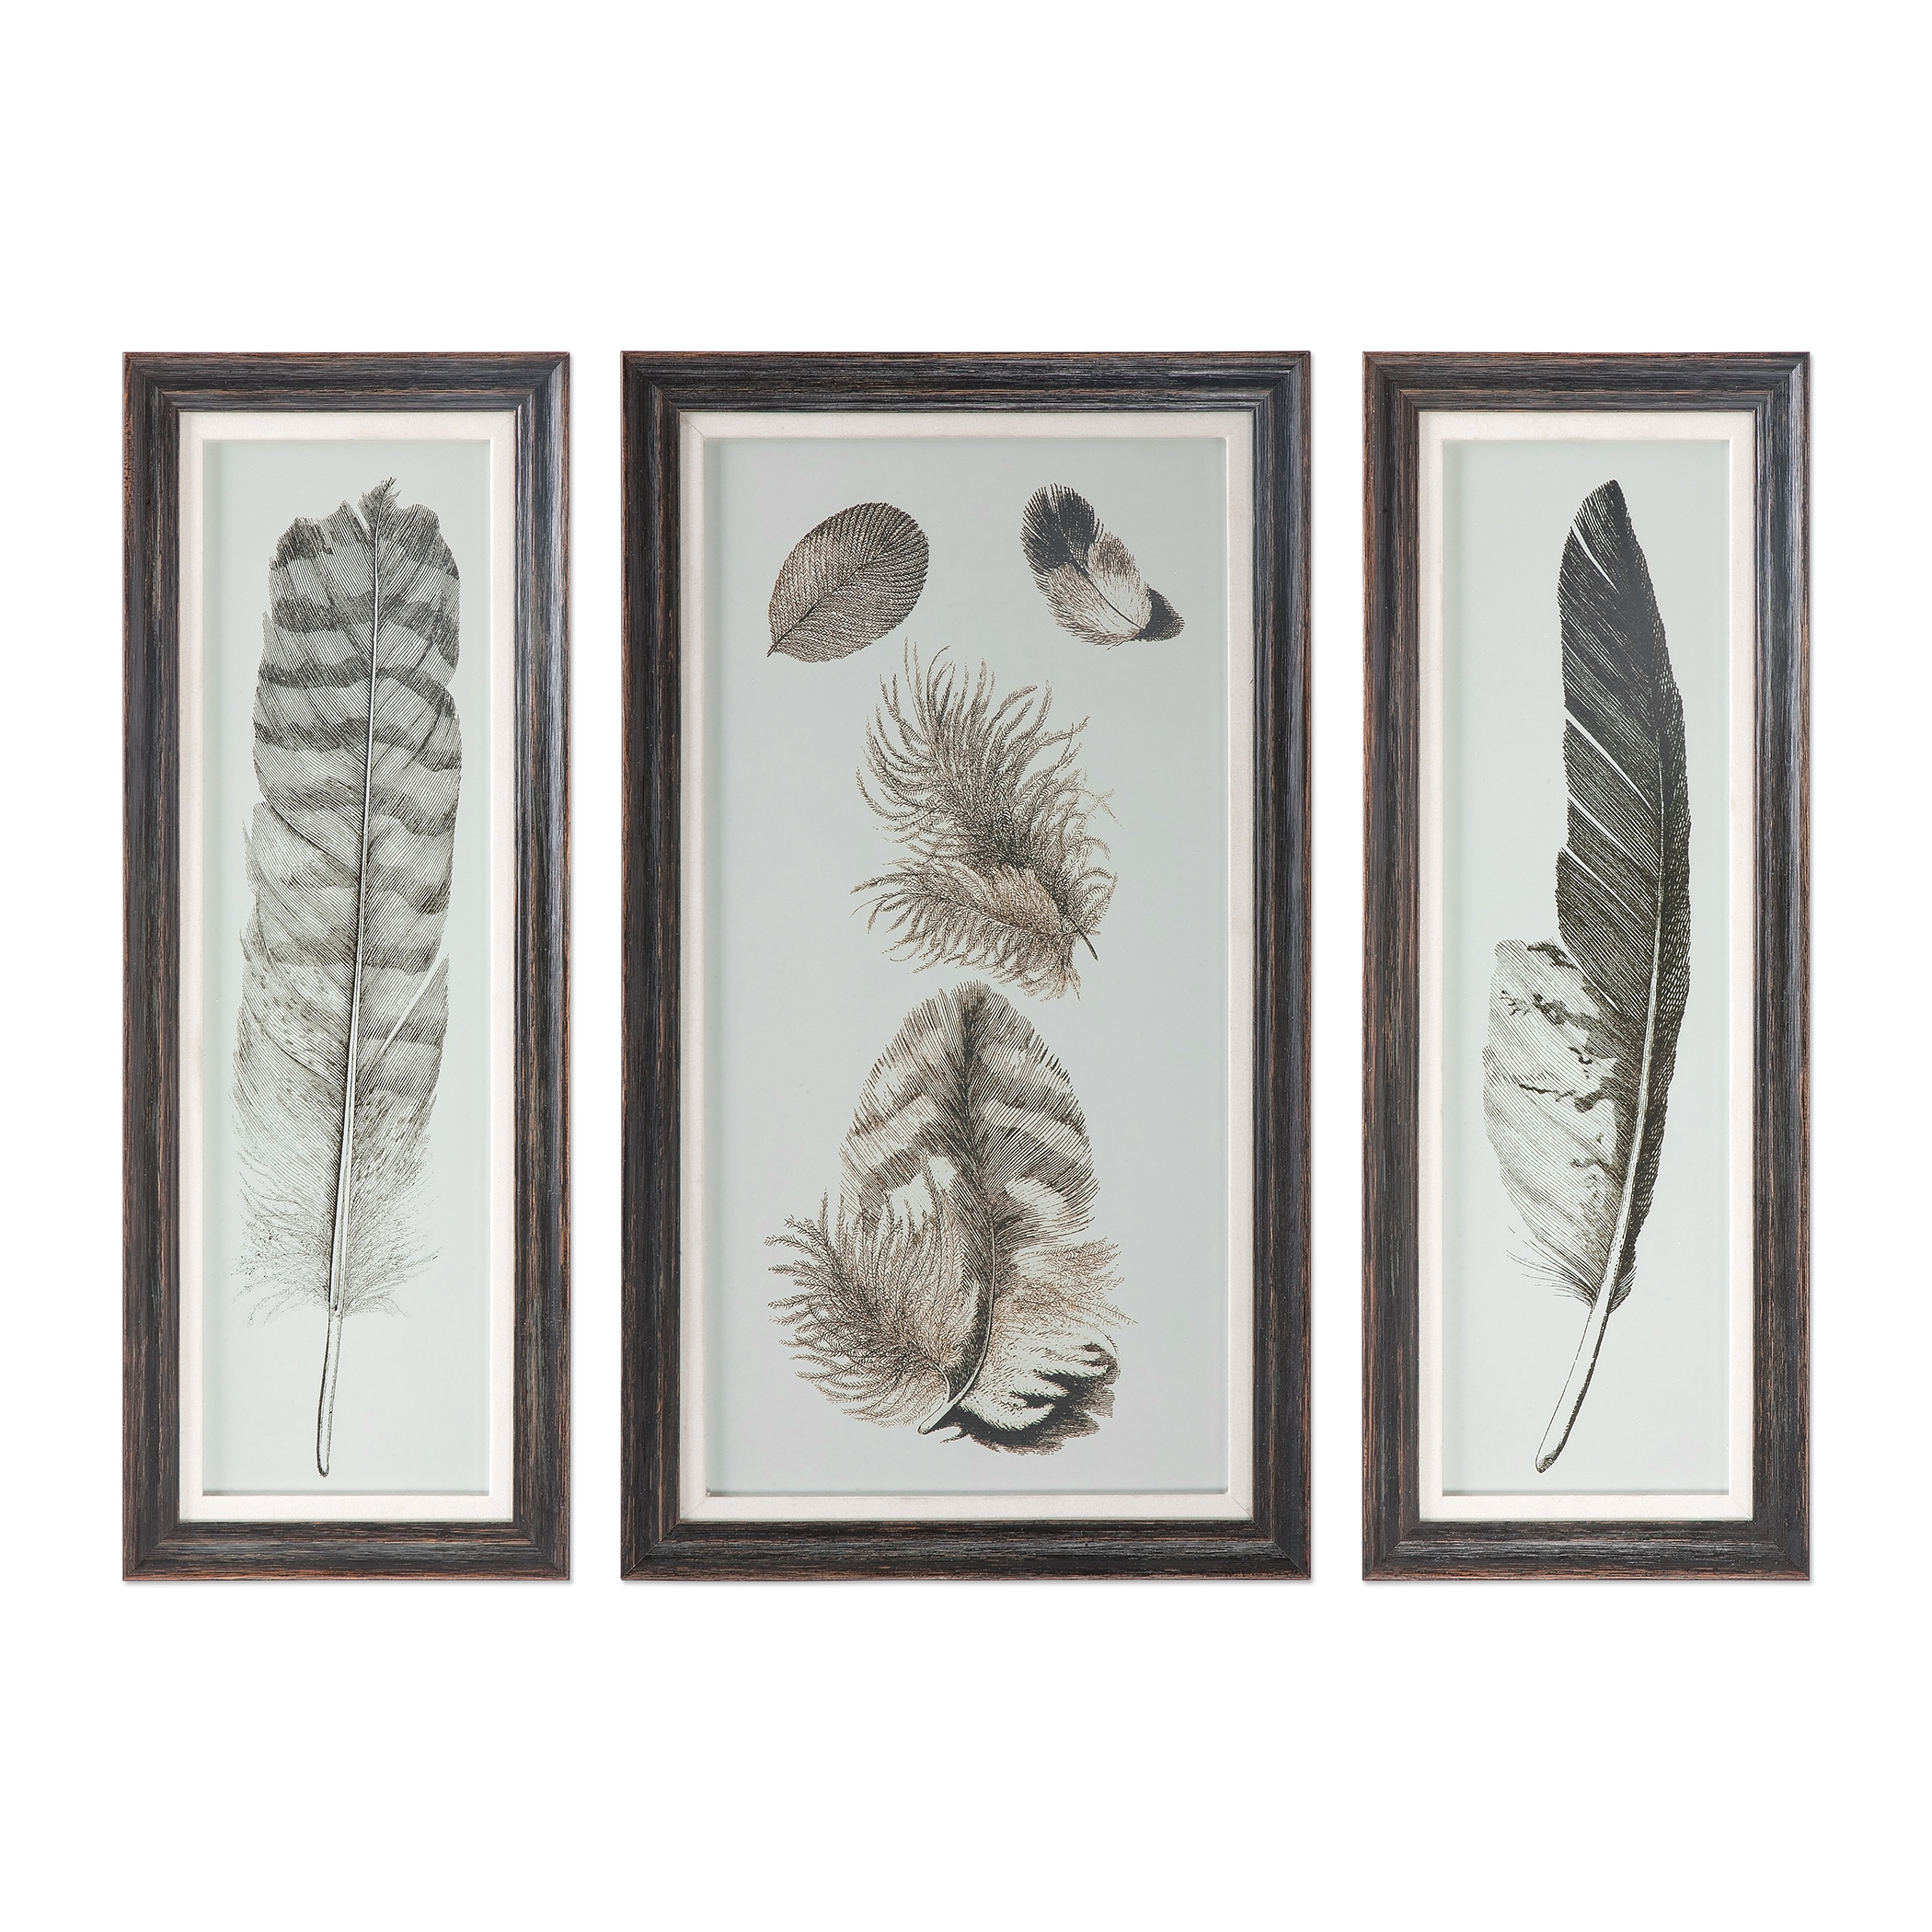 Uttermost Art Feather Study Prints, S/3 - Item Number: 33632